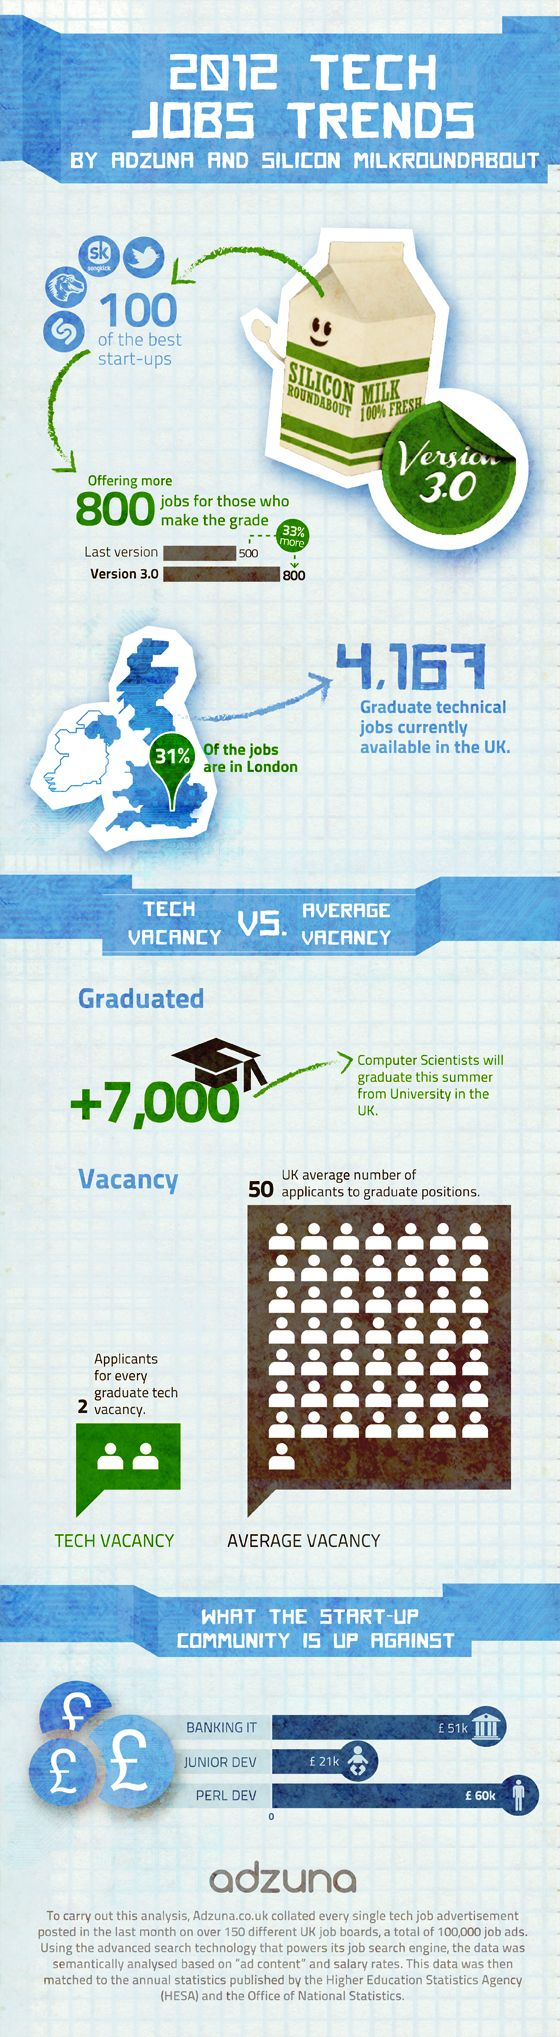 Technology Job TrendsTech Trends, Trends Infographic,  Website, Technology Job, Technical Job, Job Trends, Job Infographic, Tech Job, 2012 Technical